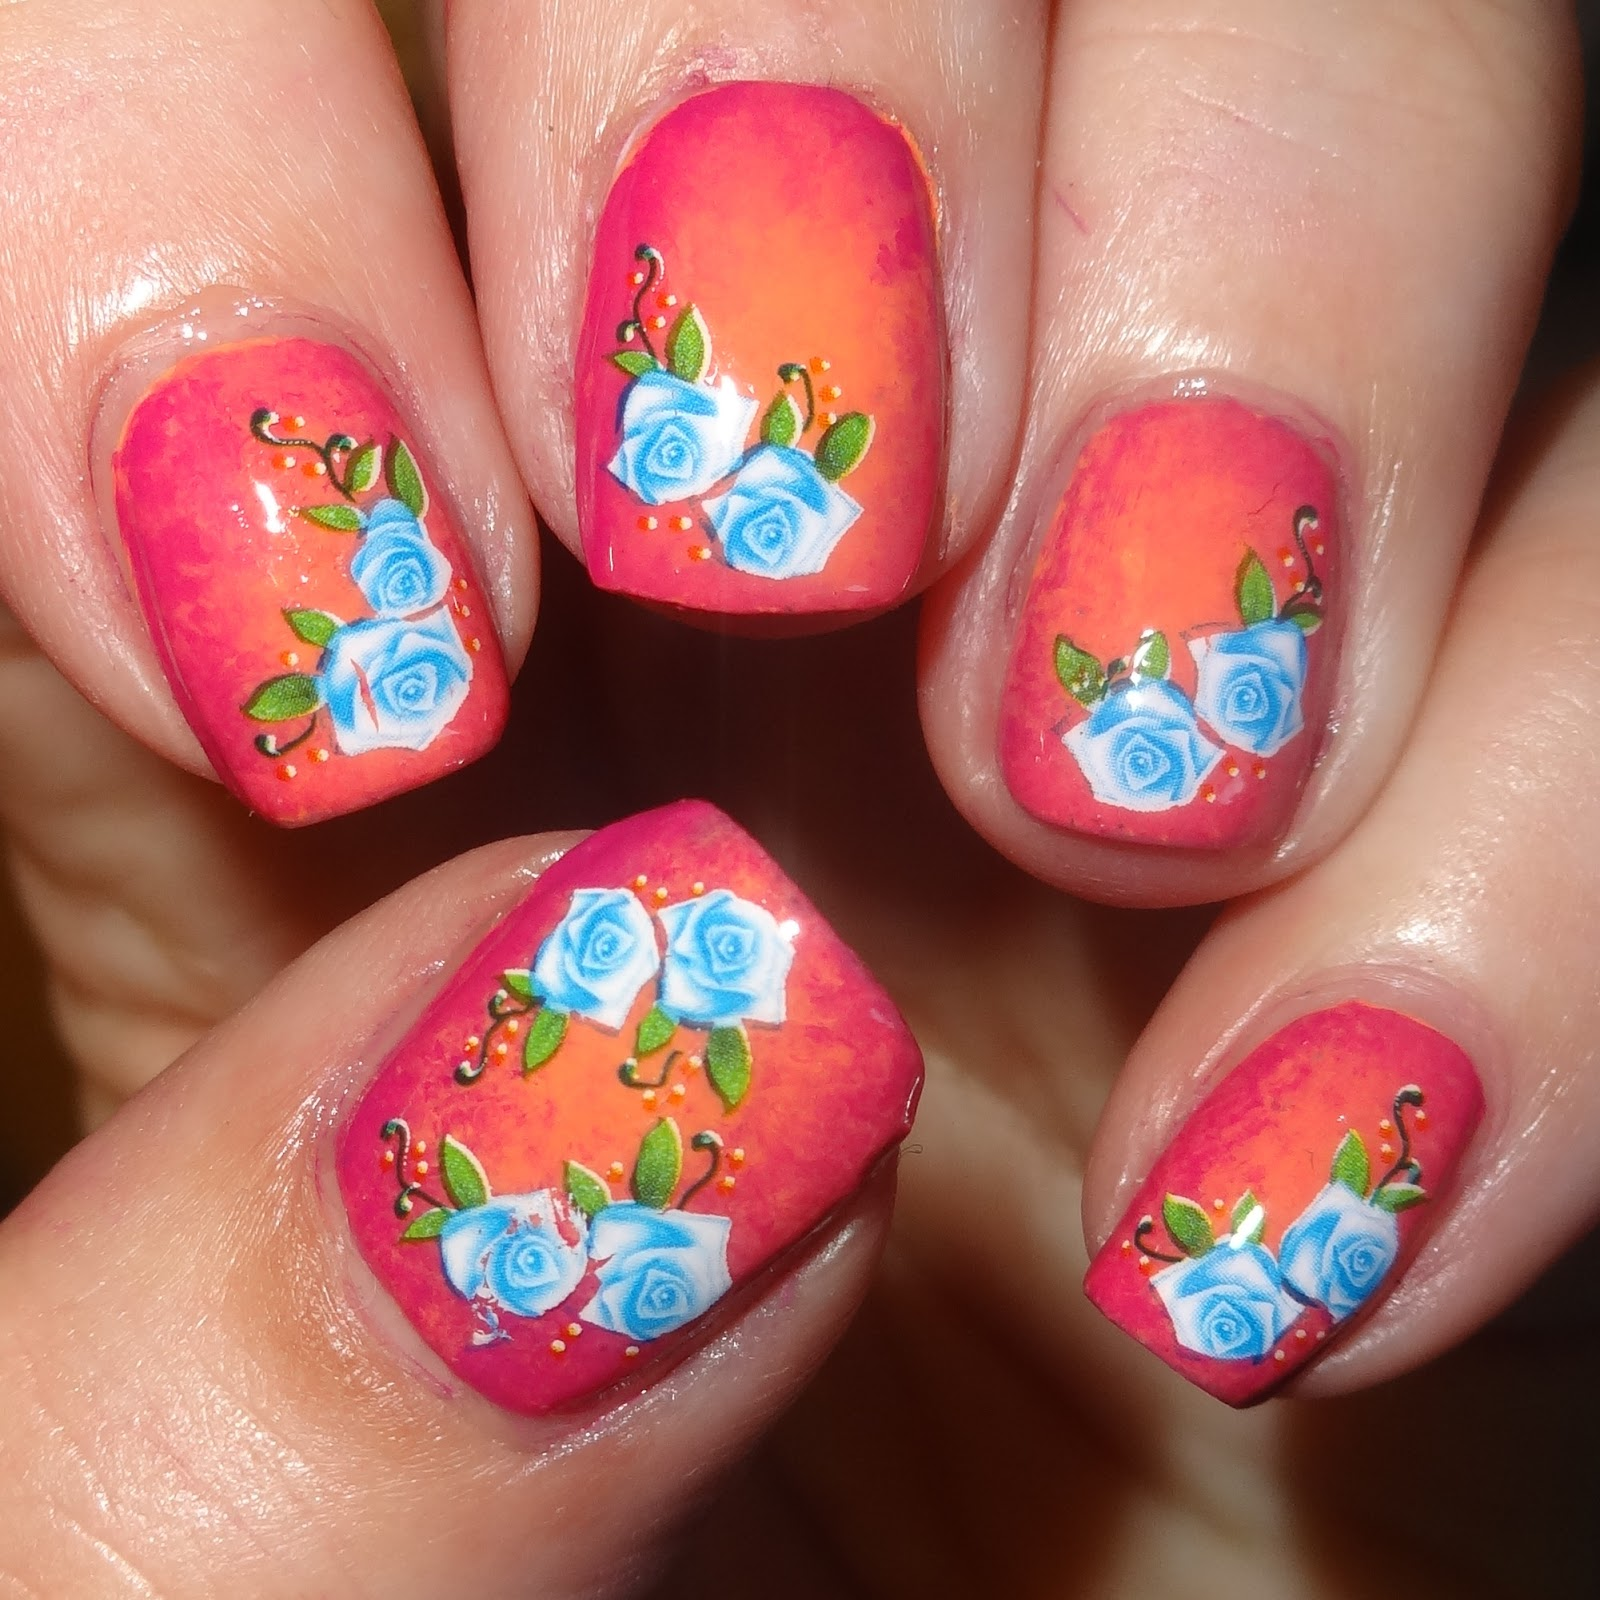 Wendy 39 s delights blue roses nail art water decals from - What are blue roses called ...